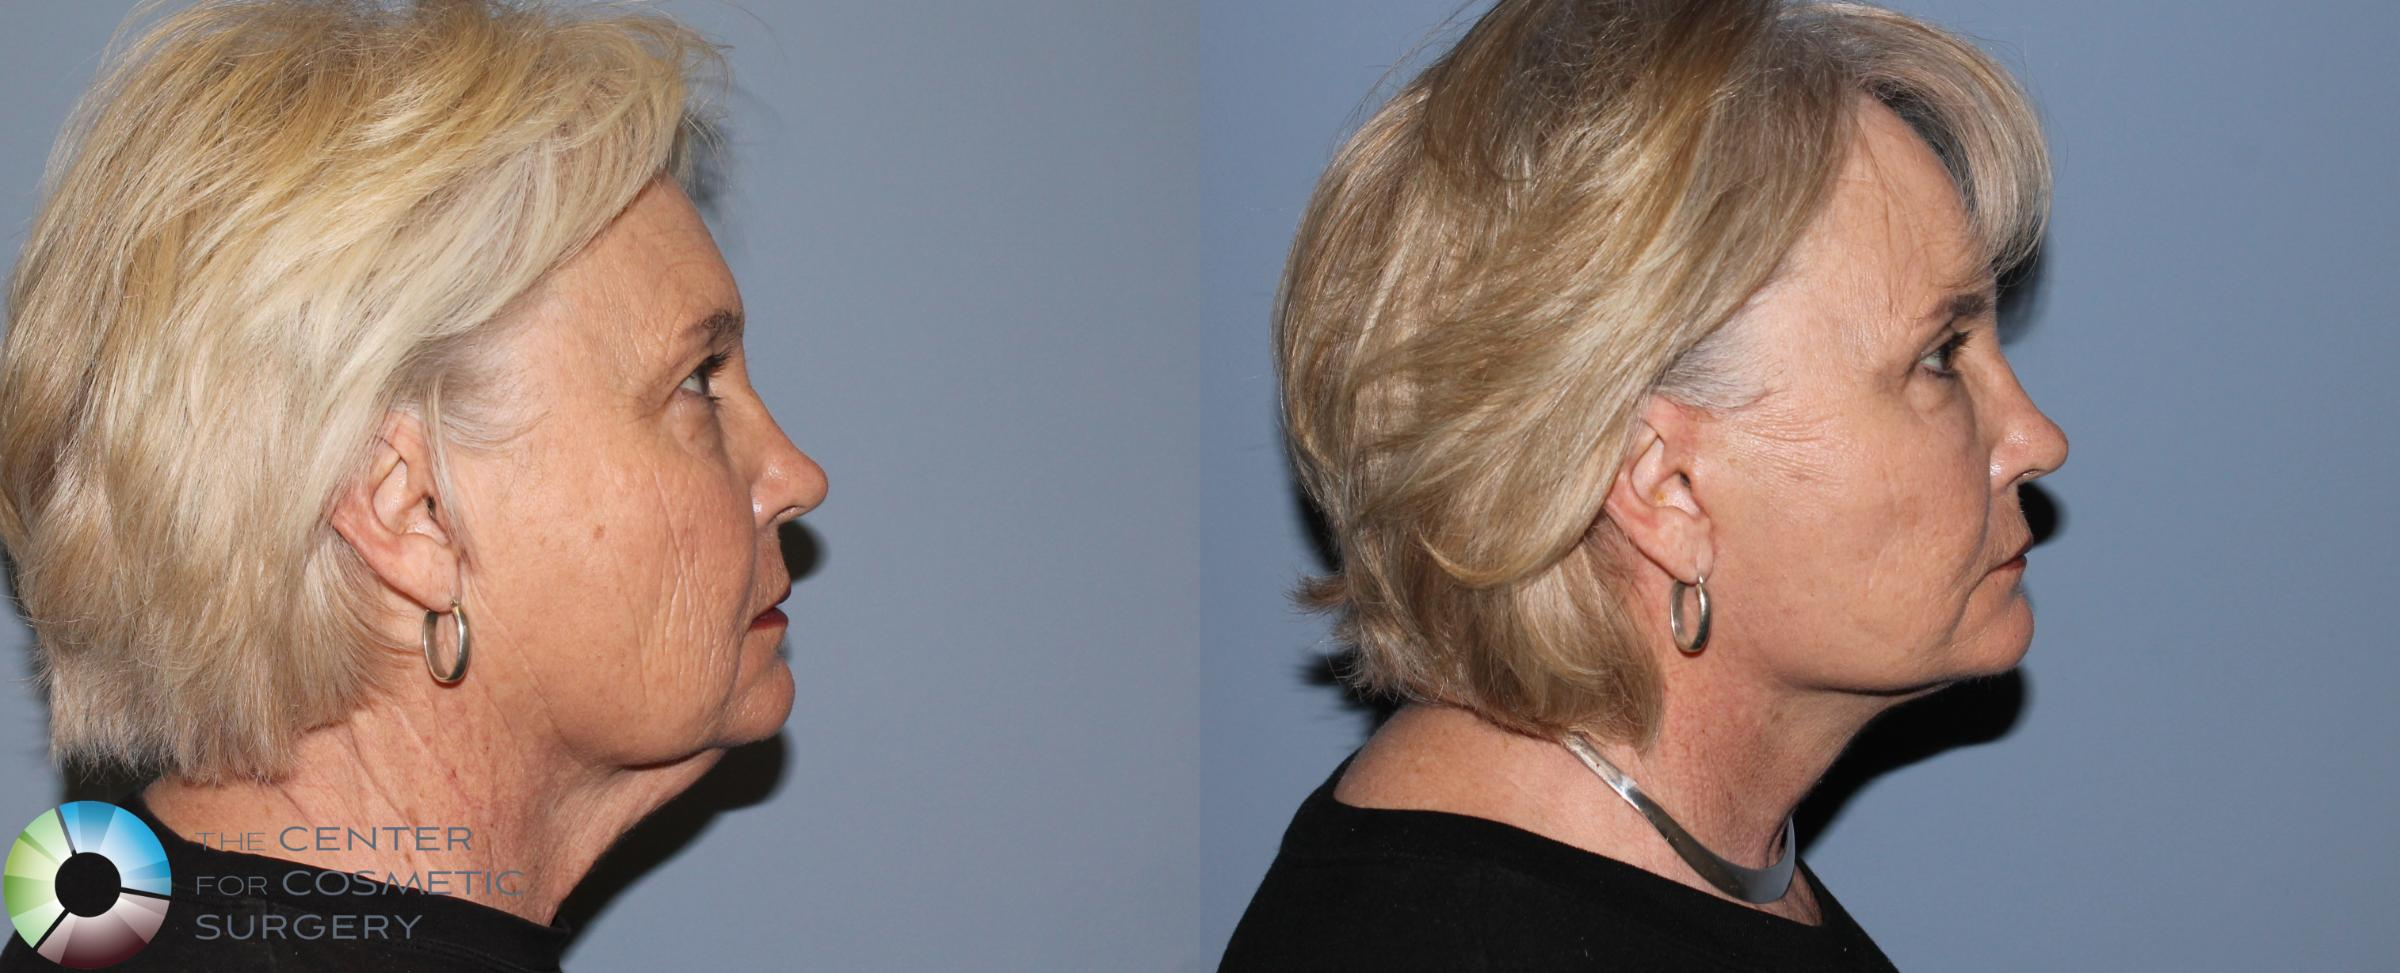 Neck Lift Case 773 Before & After View #1 | Golden, CO | The Center for Cosmetic Surgery